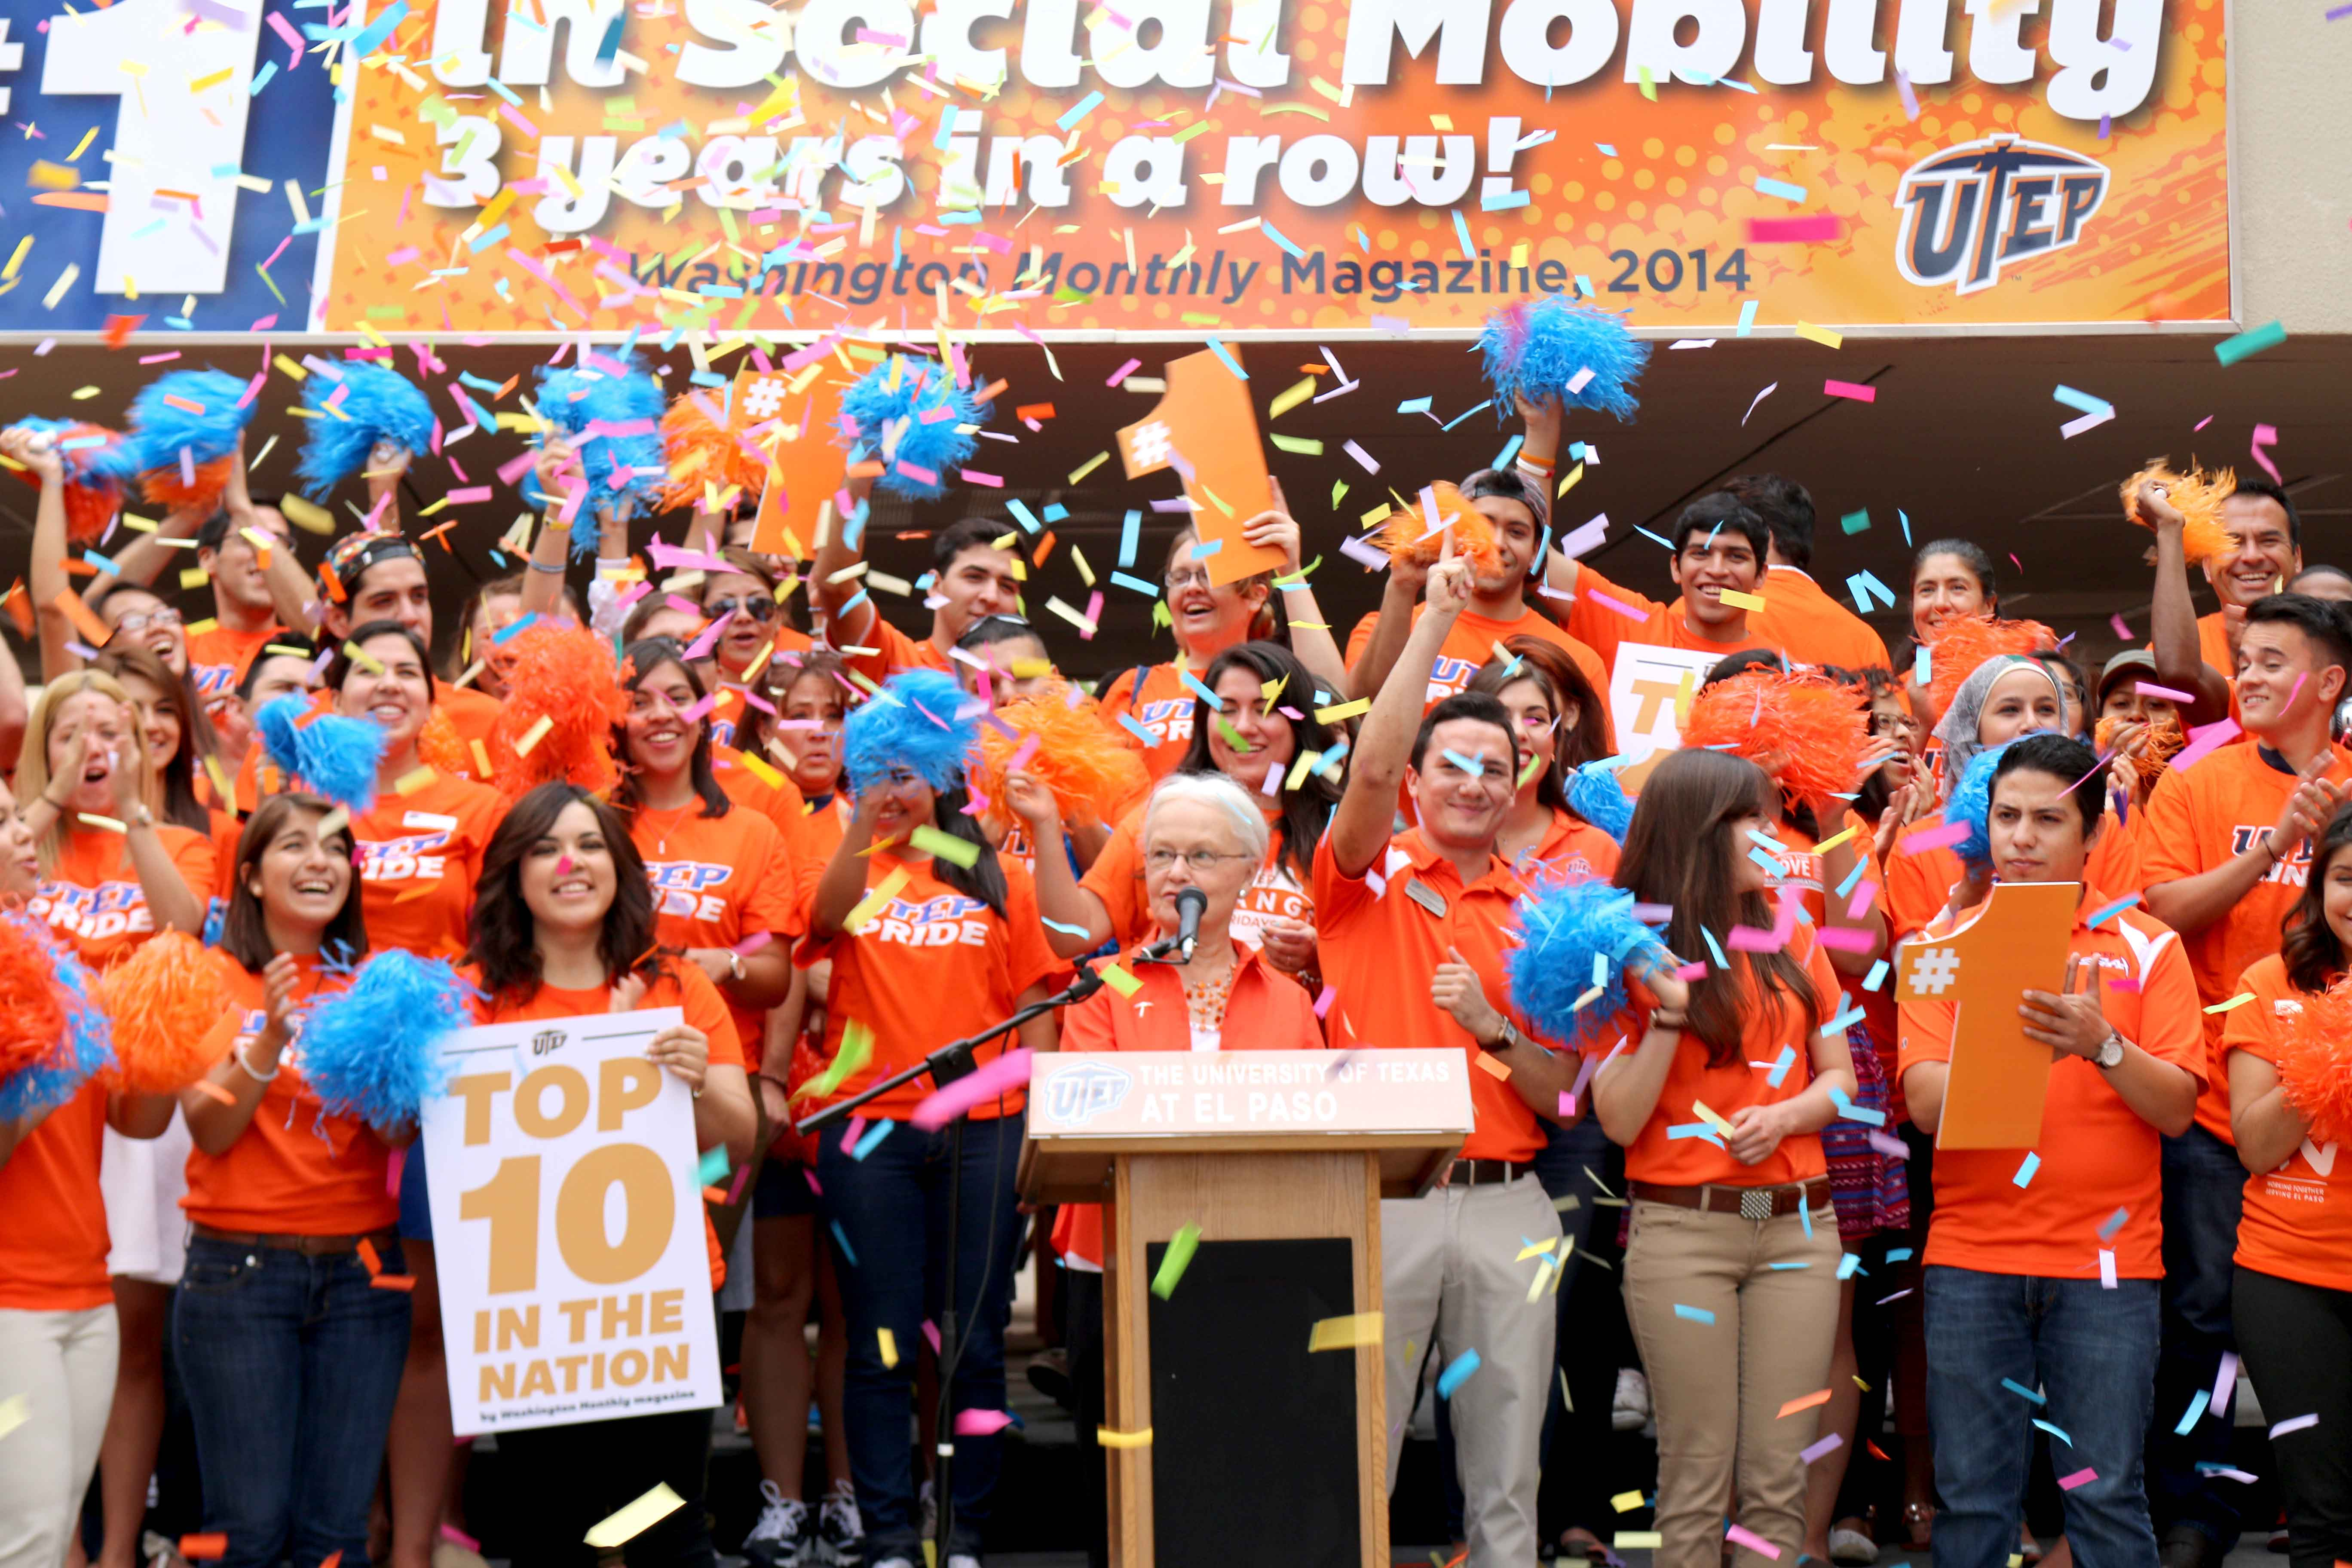 Dr. Diana Natalicio announces UTEP's ranking by Washington Monthly, tuesday at the Union.